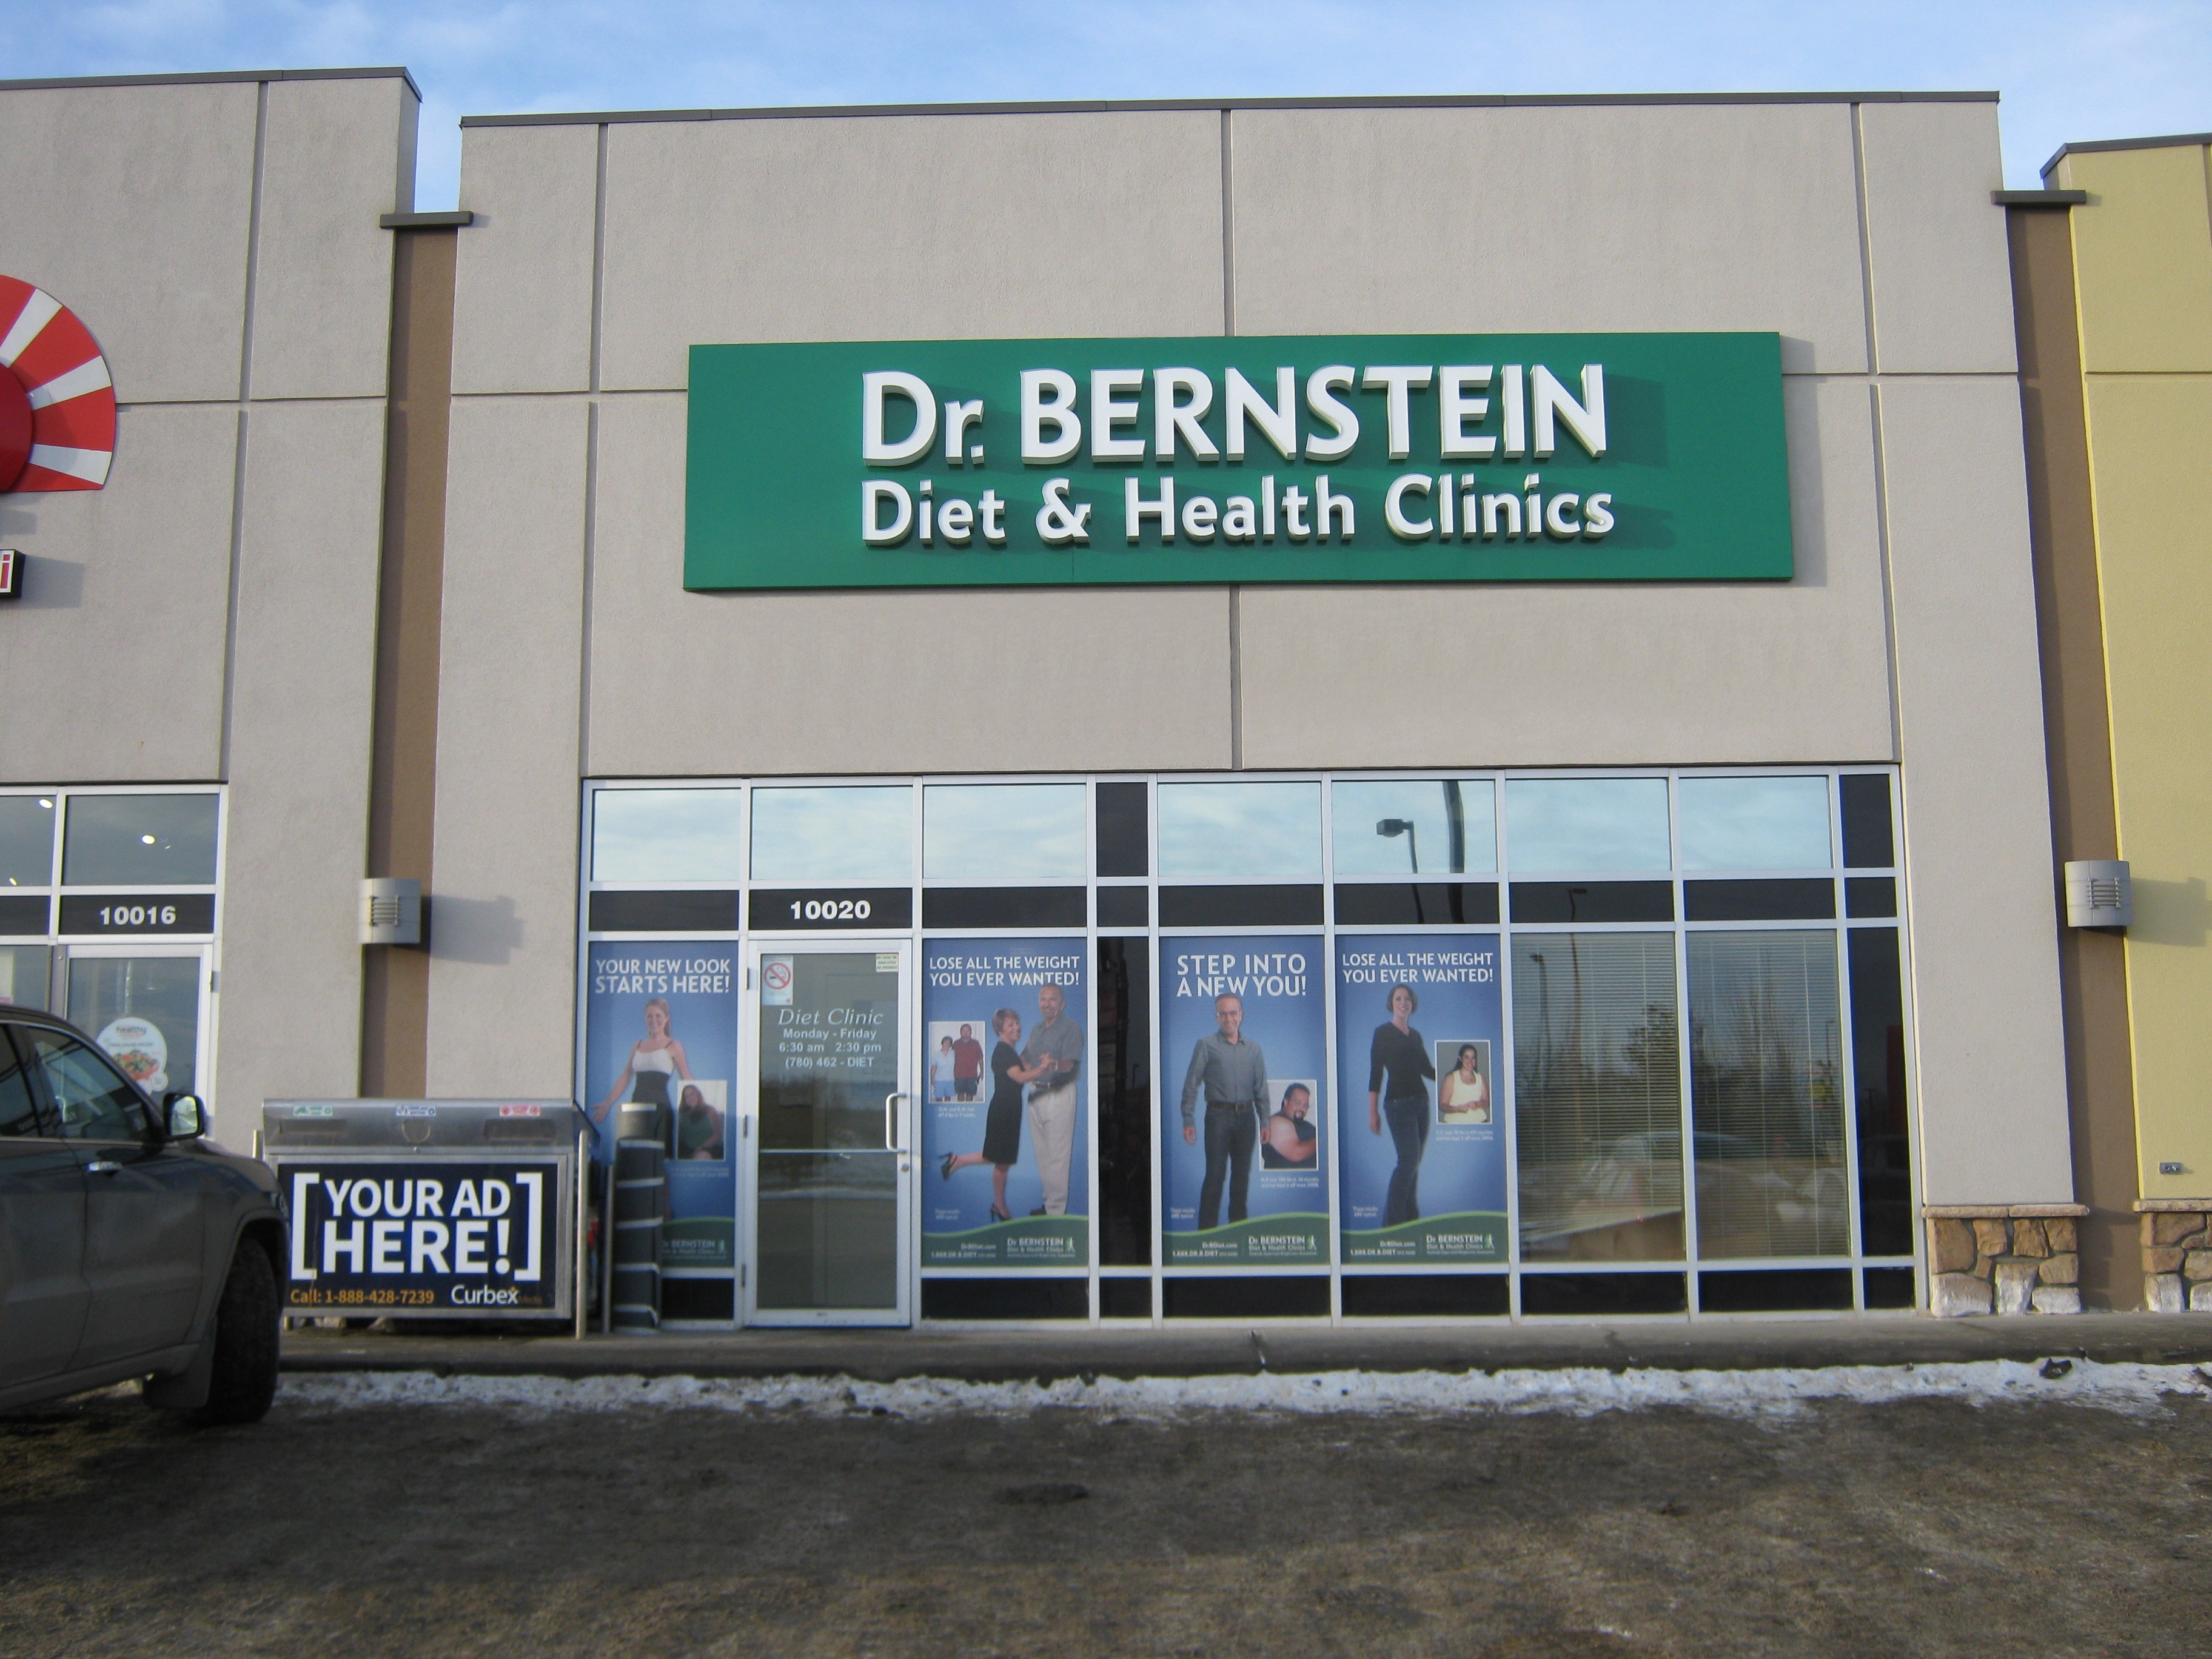 Dr. Bernstein Weight Loss & Diet Clinic, South Edmonton Common - Edmonton, Alberta